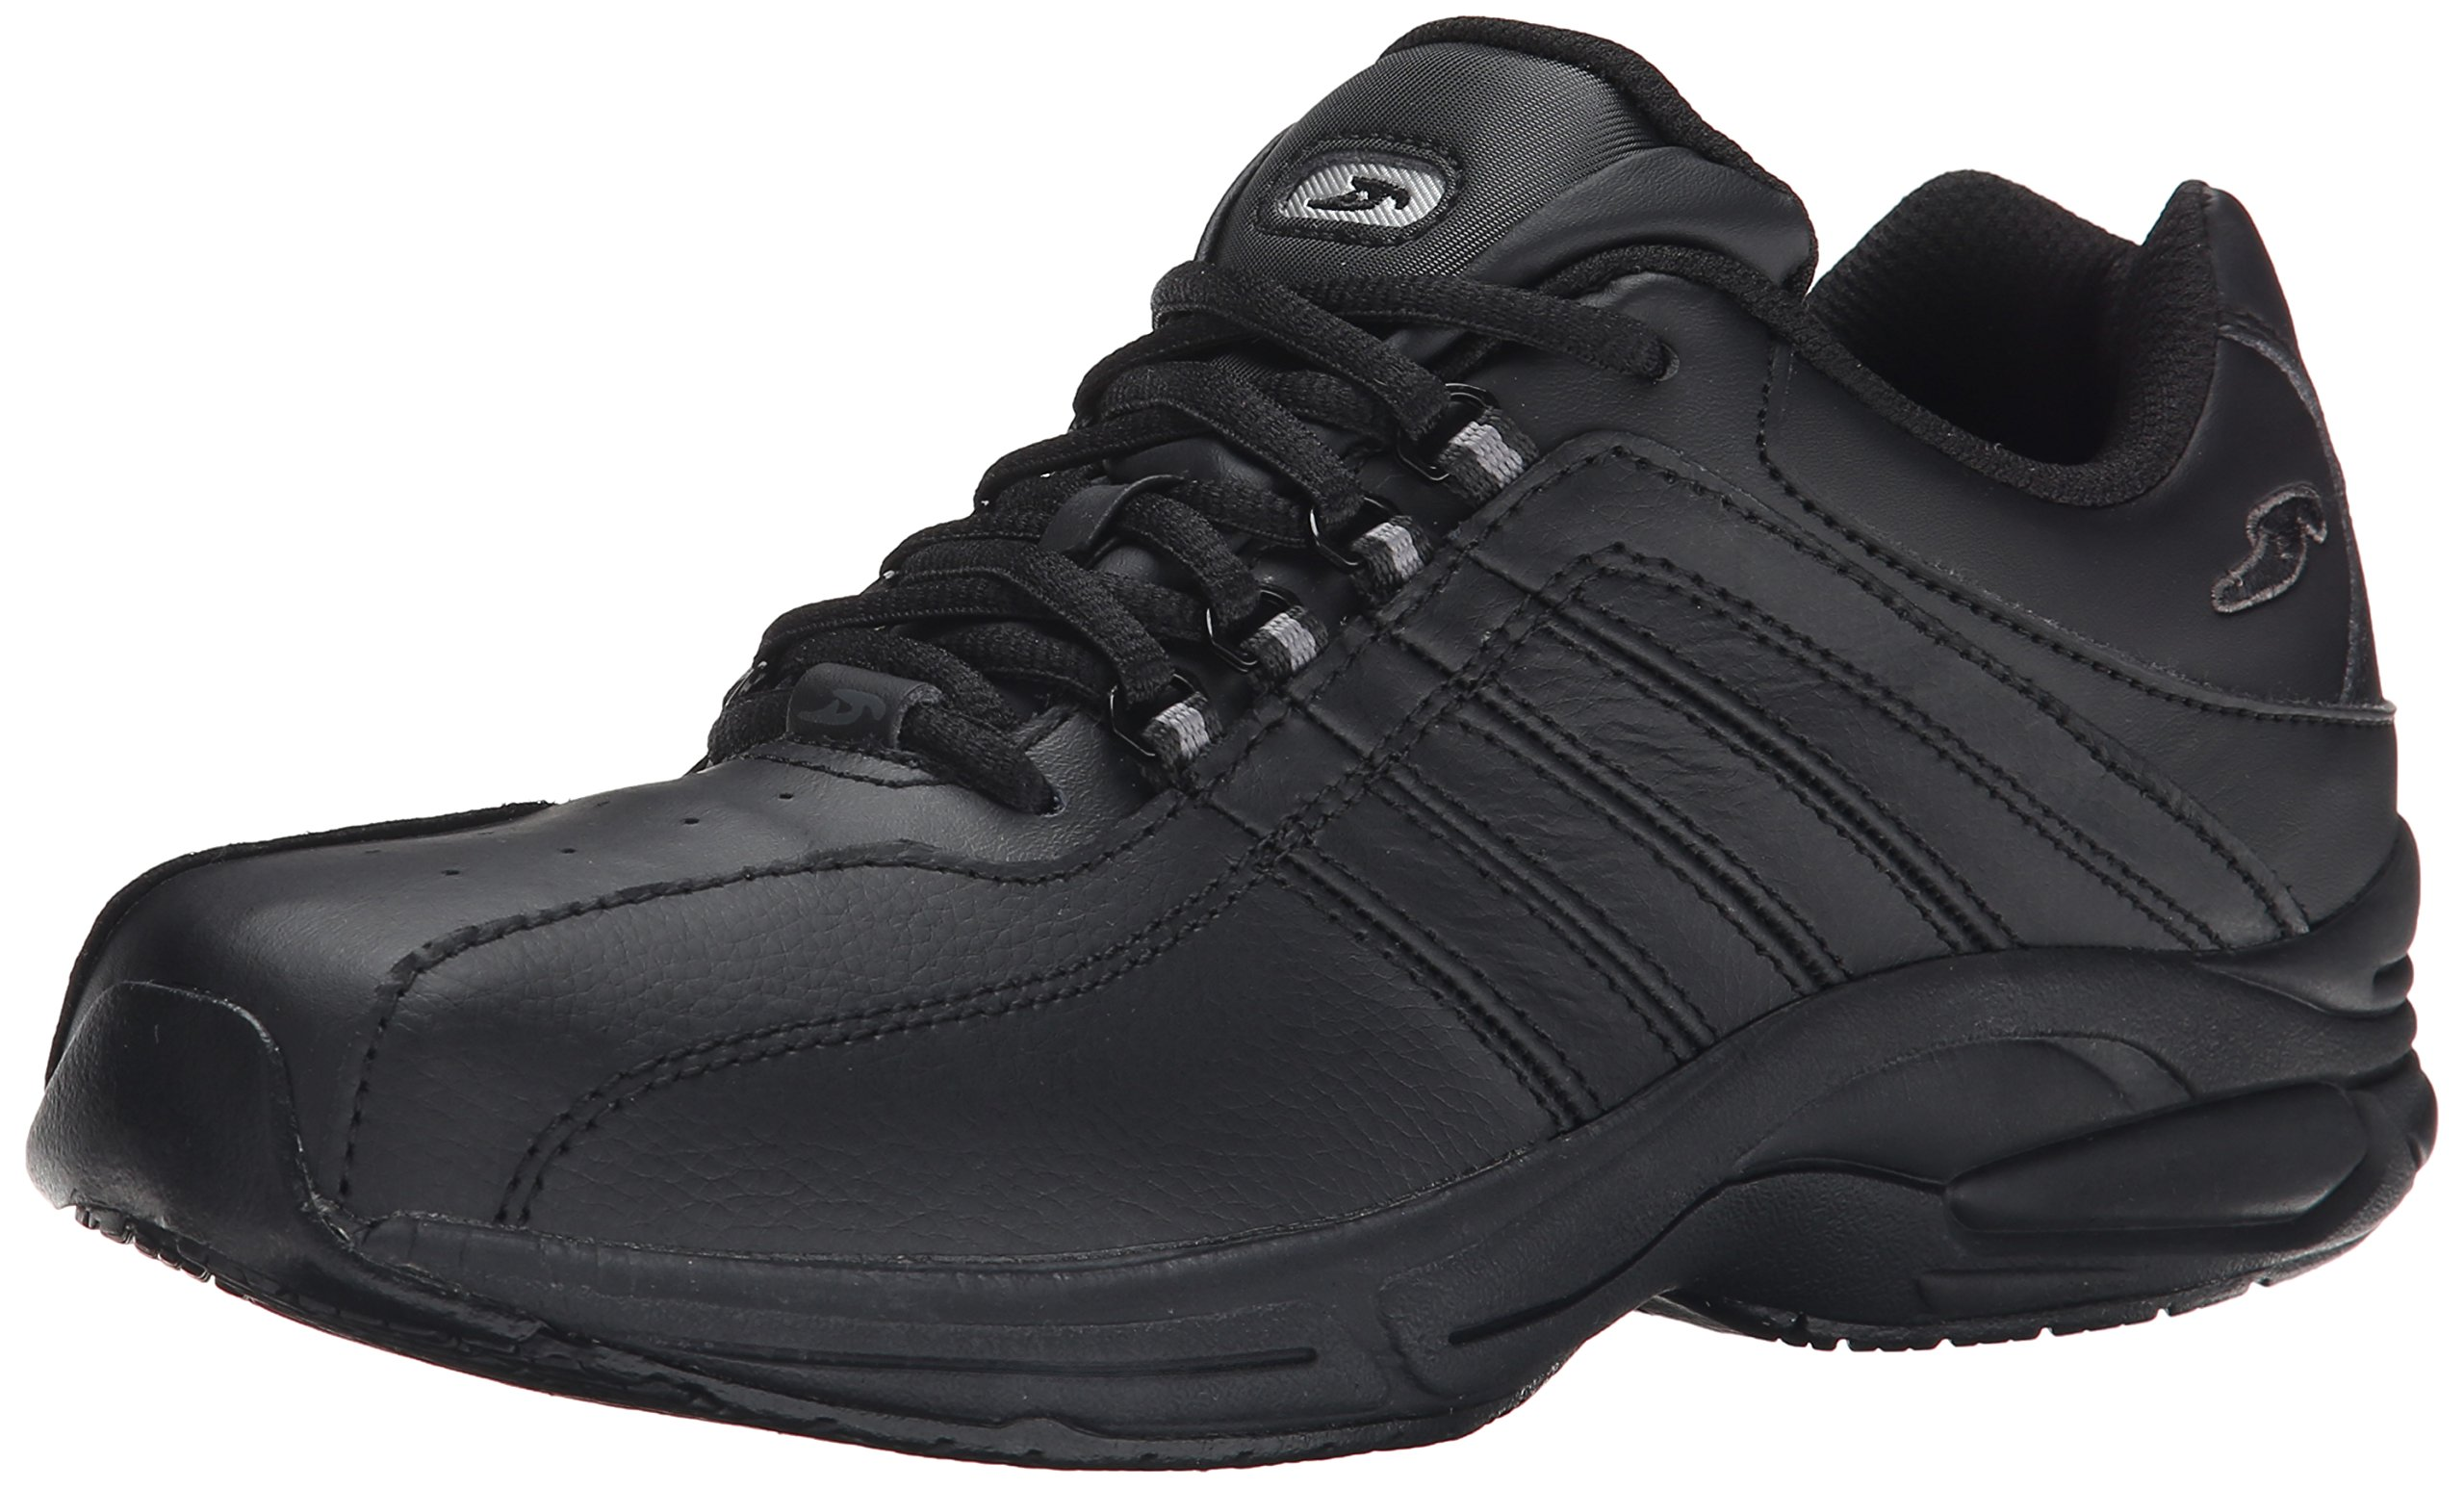 Dr. Scholl's Shoes Women's Kimberly, Black, 8.5 W US